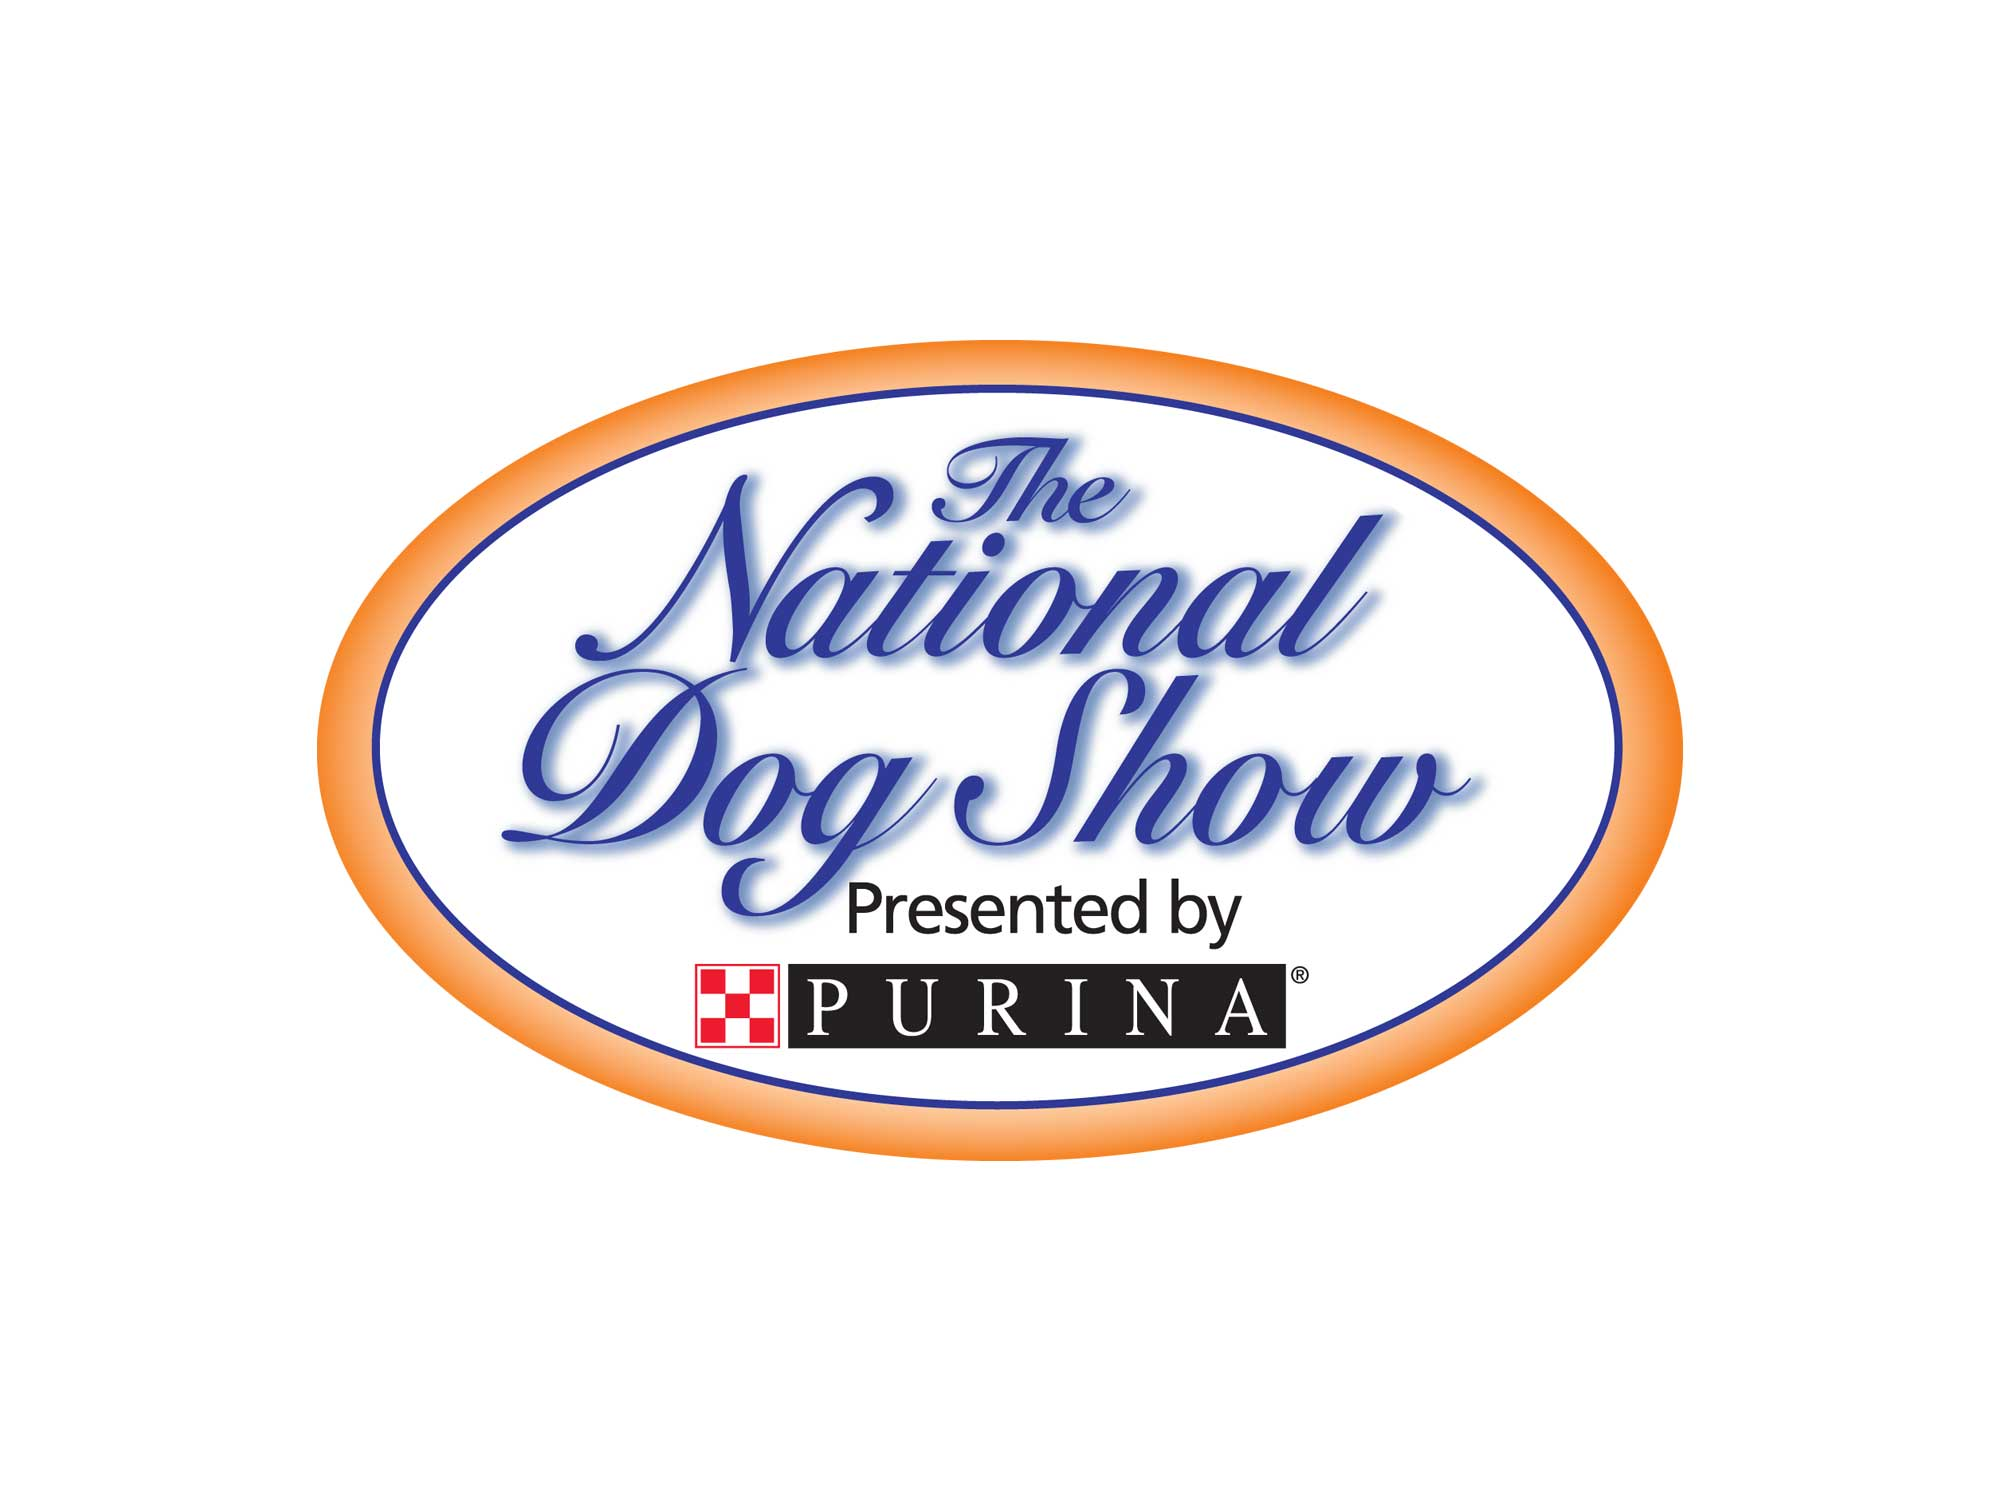 With more than 20 million viewers tuning in each year, the National Dog Show Presented by Purina will premiere on Thanksgiving Day on NBC at noon in all time zones. Watch as one of America's favorite dog breeds is crowned the 2018 champion.